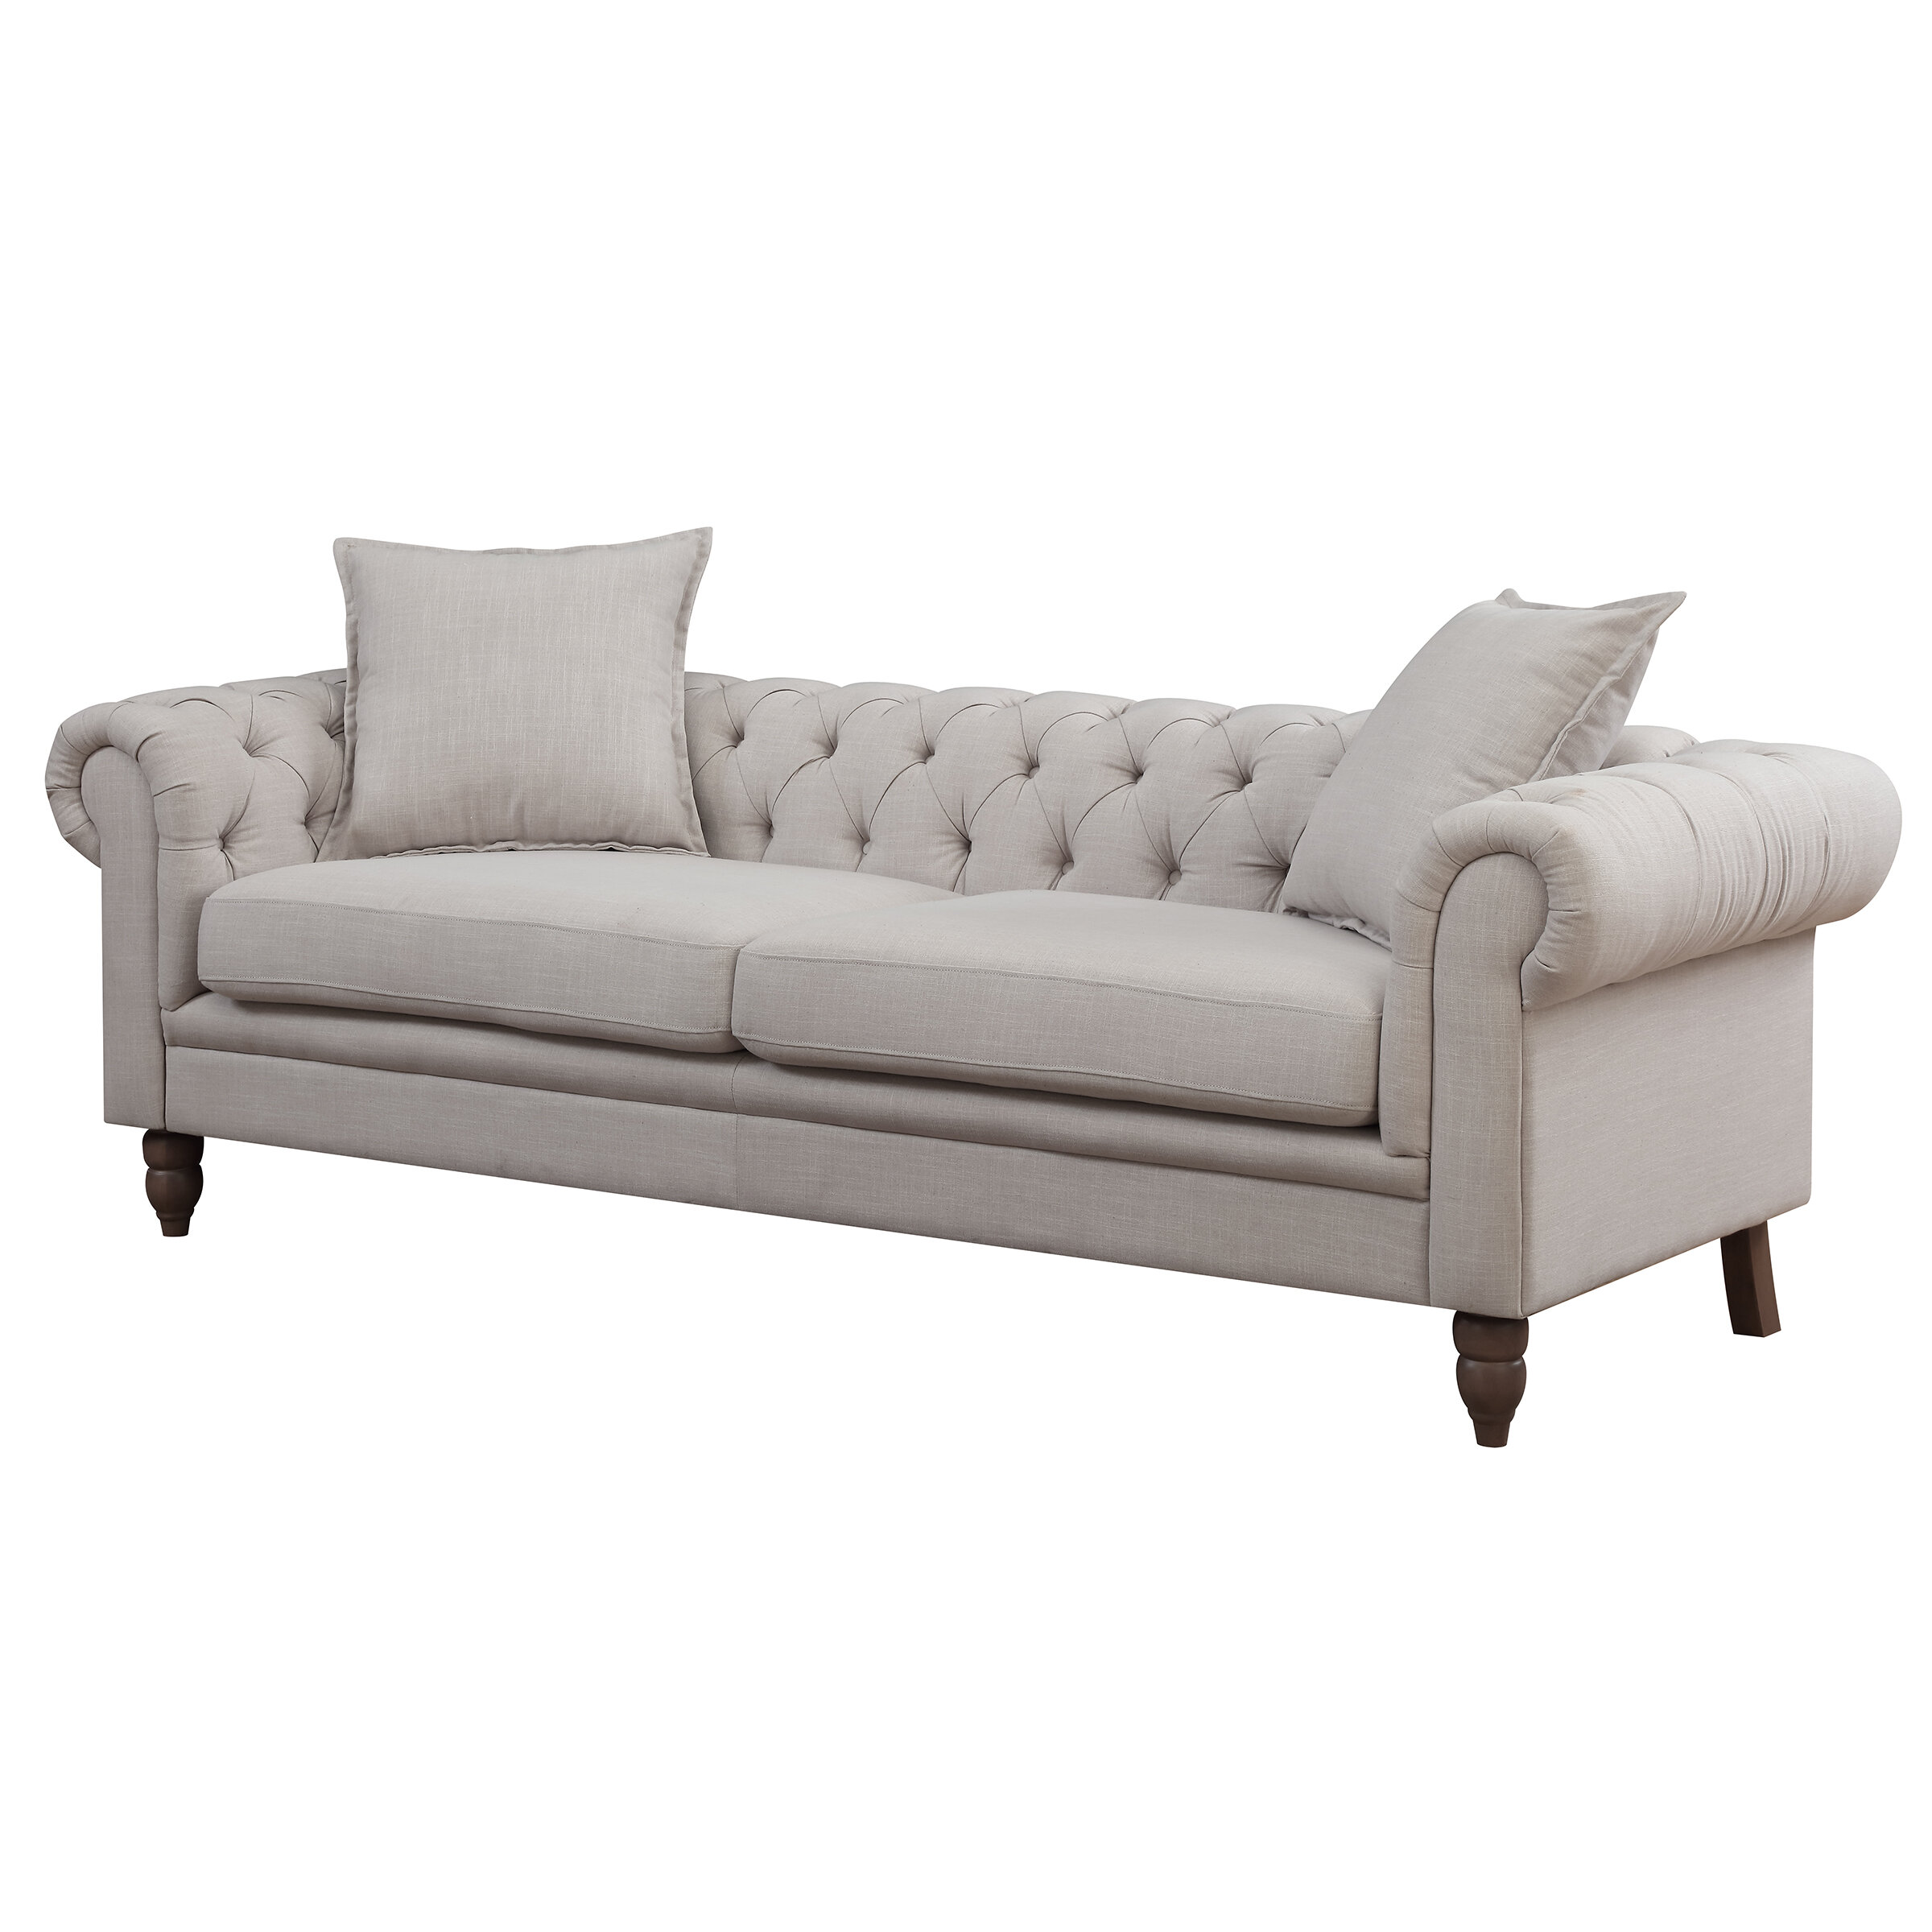 chaise joss main with sofa reviews pdp juliet chesterfield furniture lounge loveseat